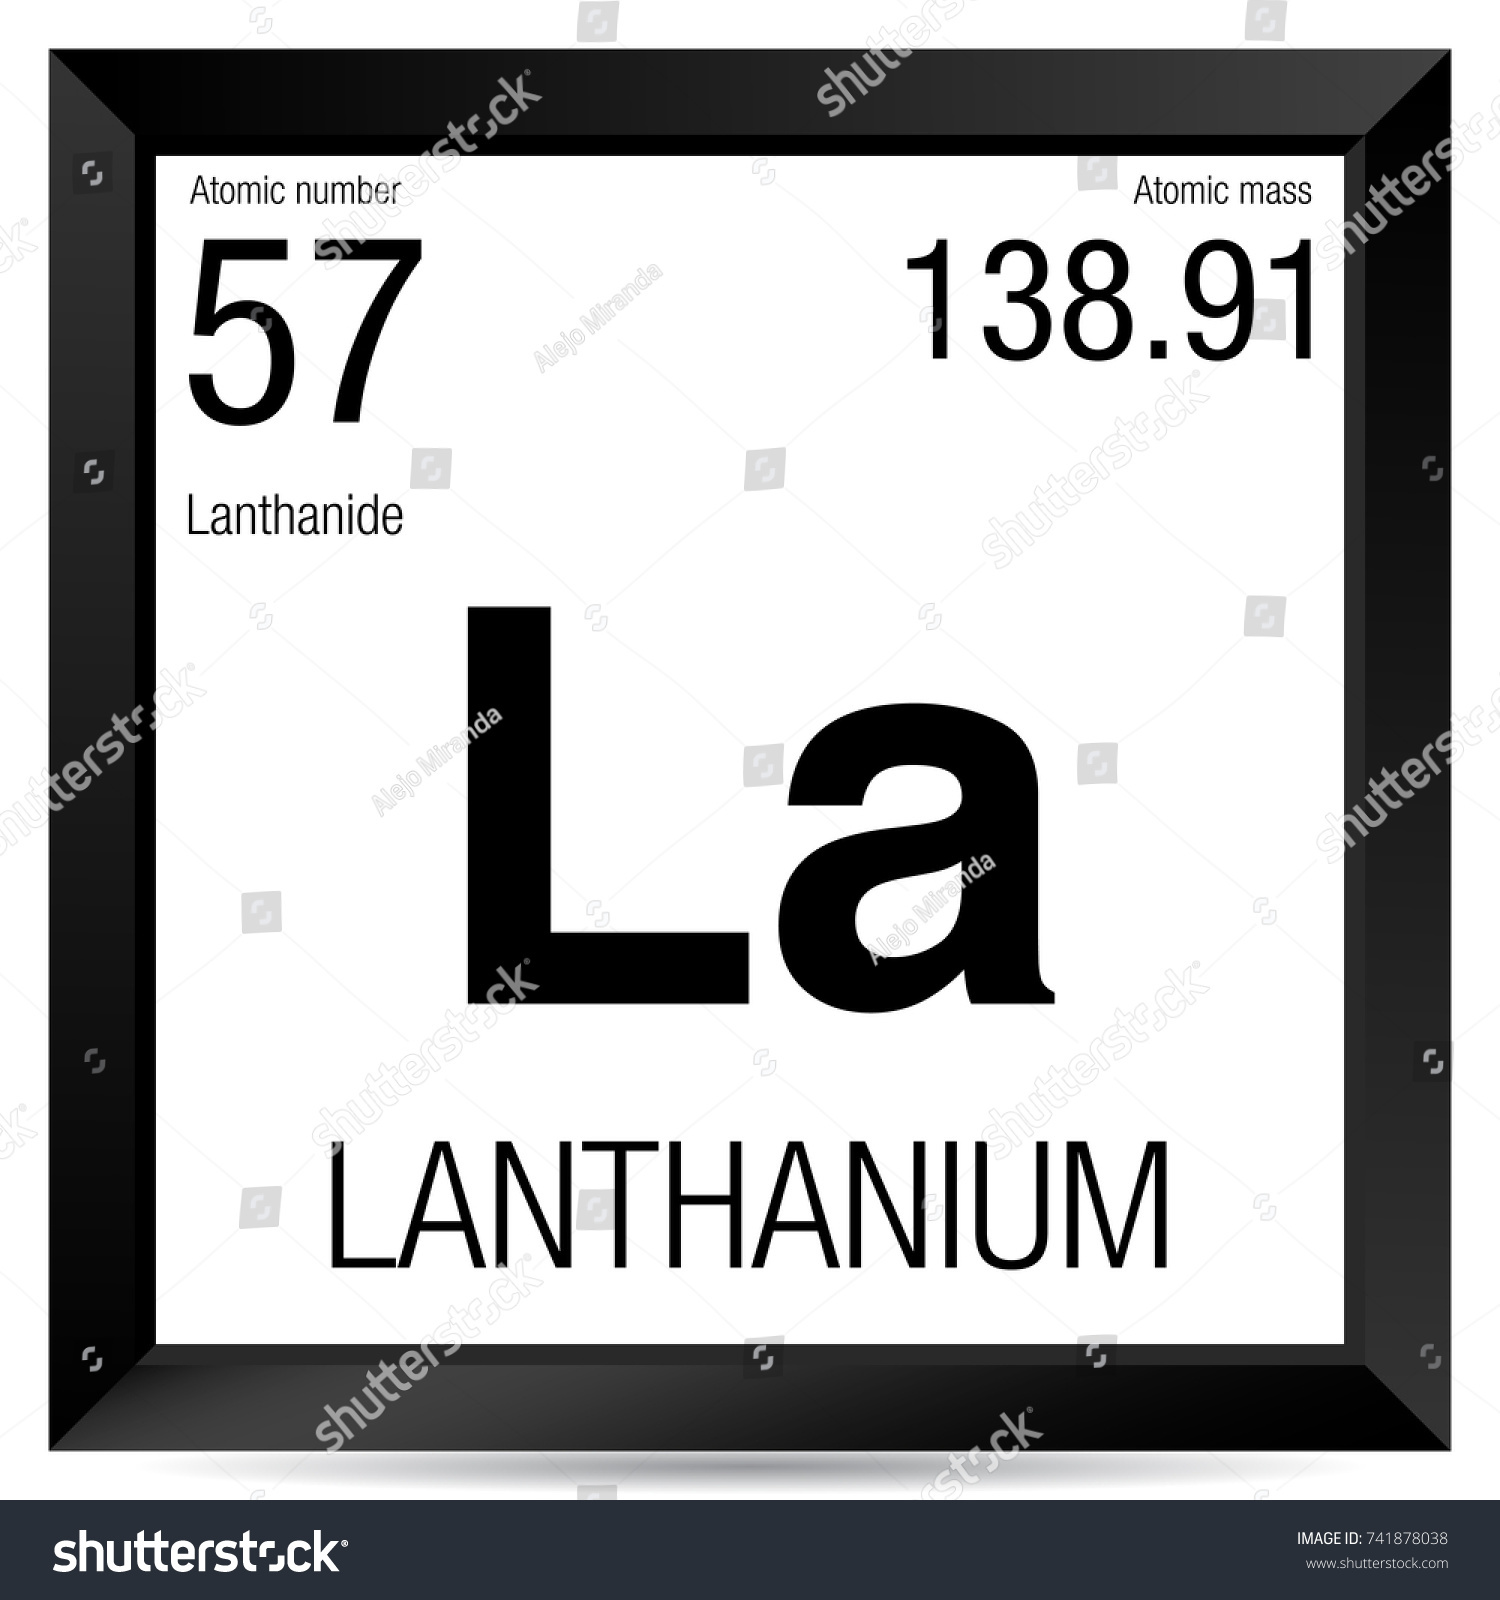 Lanthanium symbol element number 57 periodic stock vector lanthanium symbol element number 57 of the periodic table of the elements chemistry gamestrikefo Images